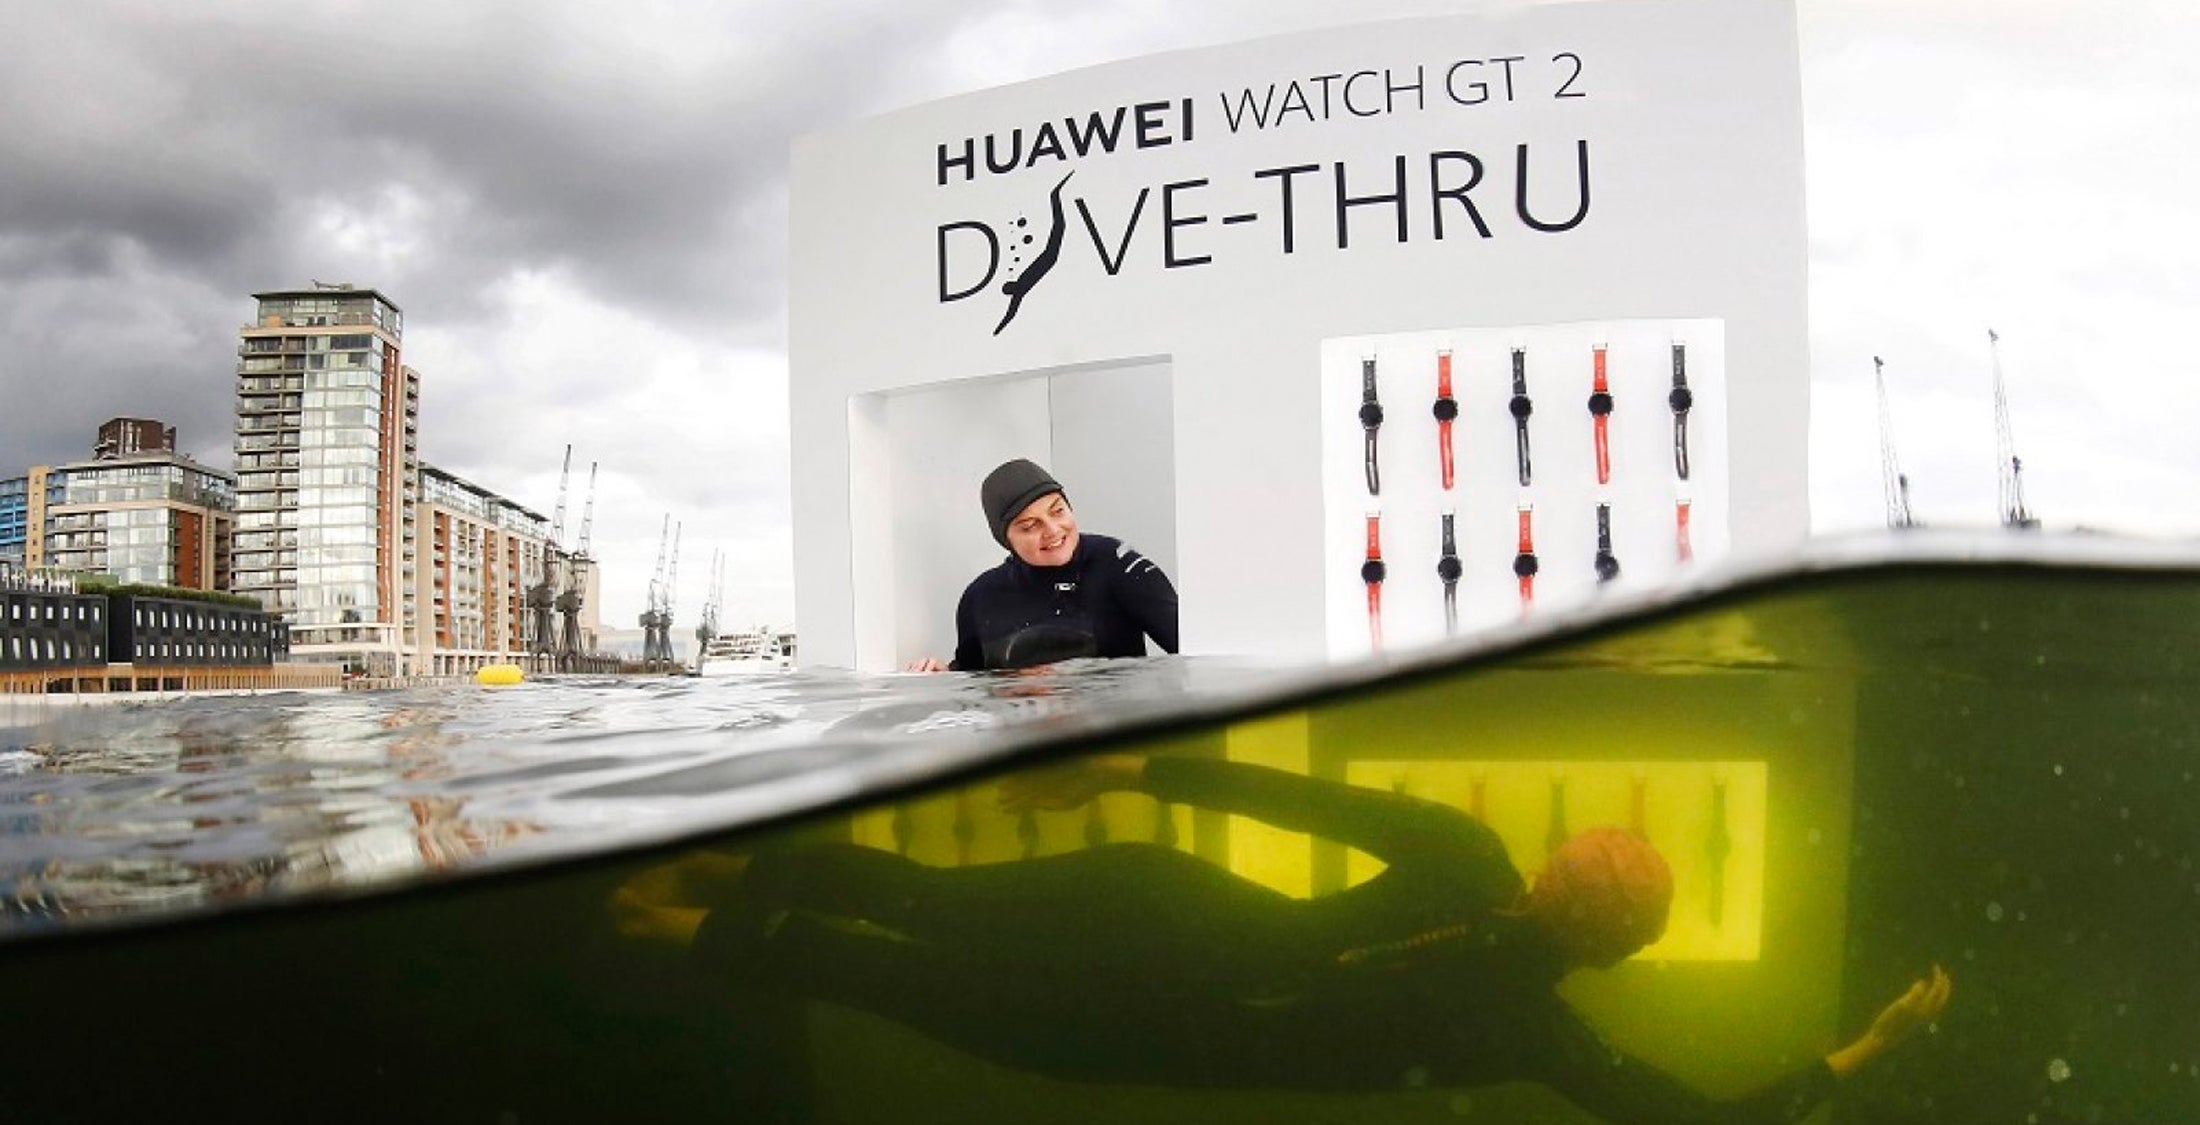 Want a free Huawei Watch GT2? You're going to need to get wet